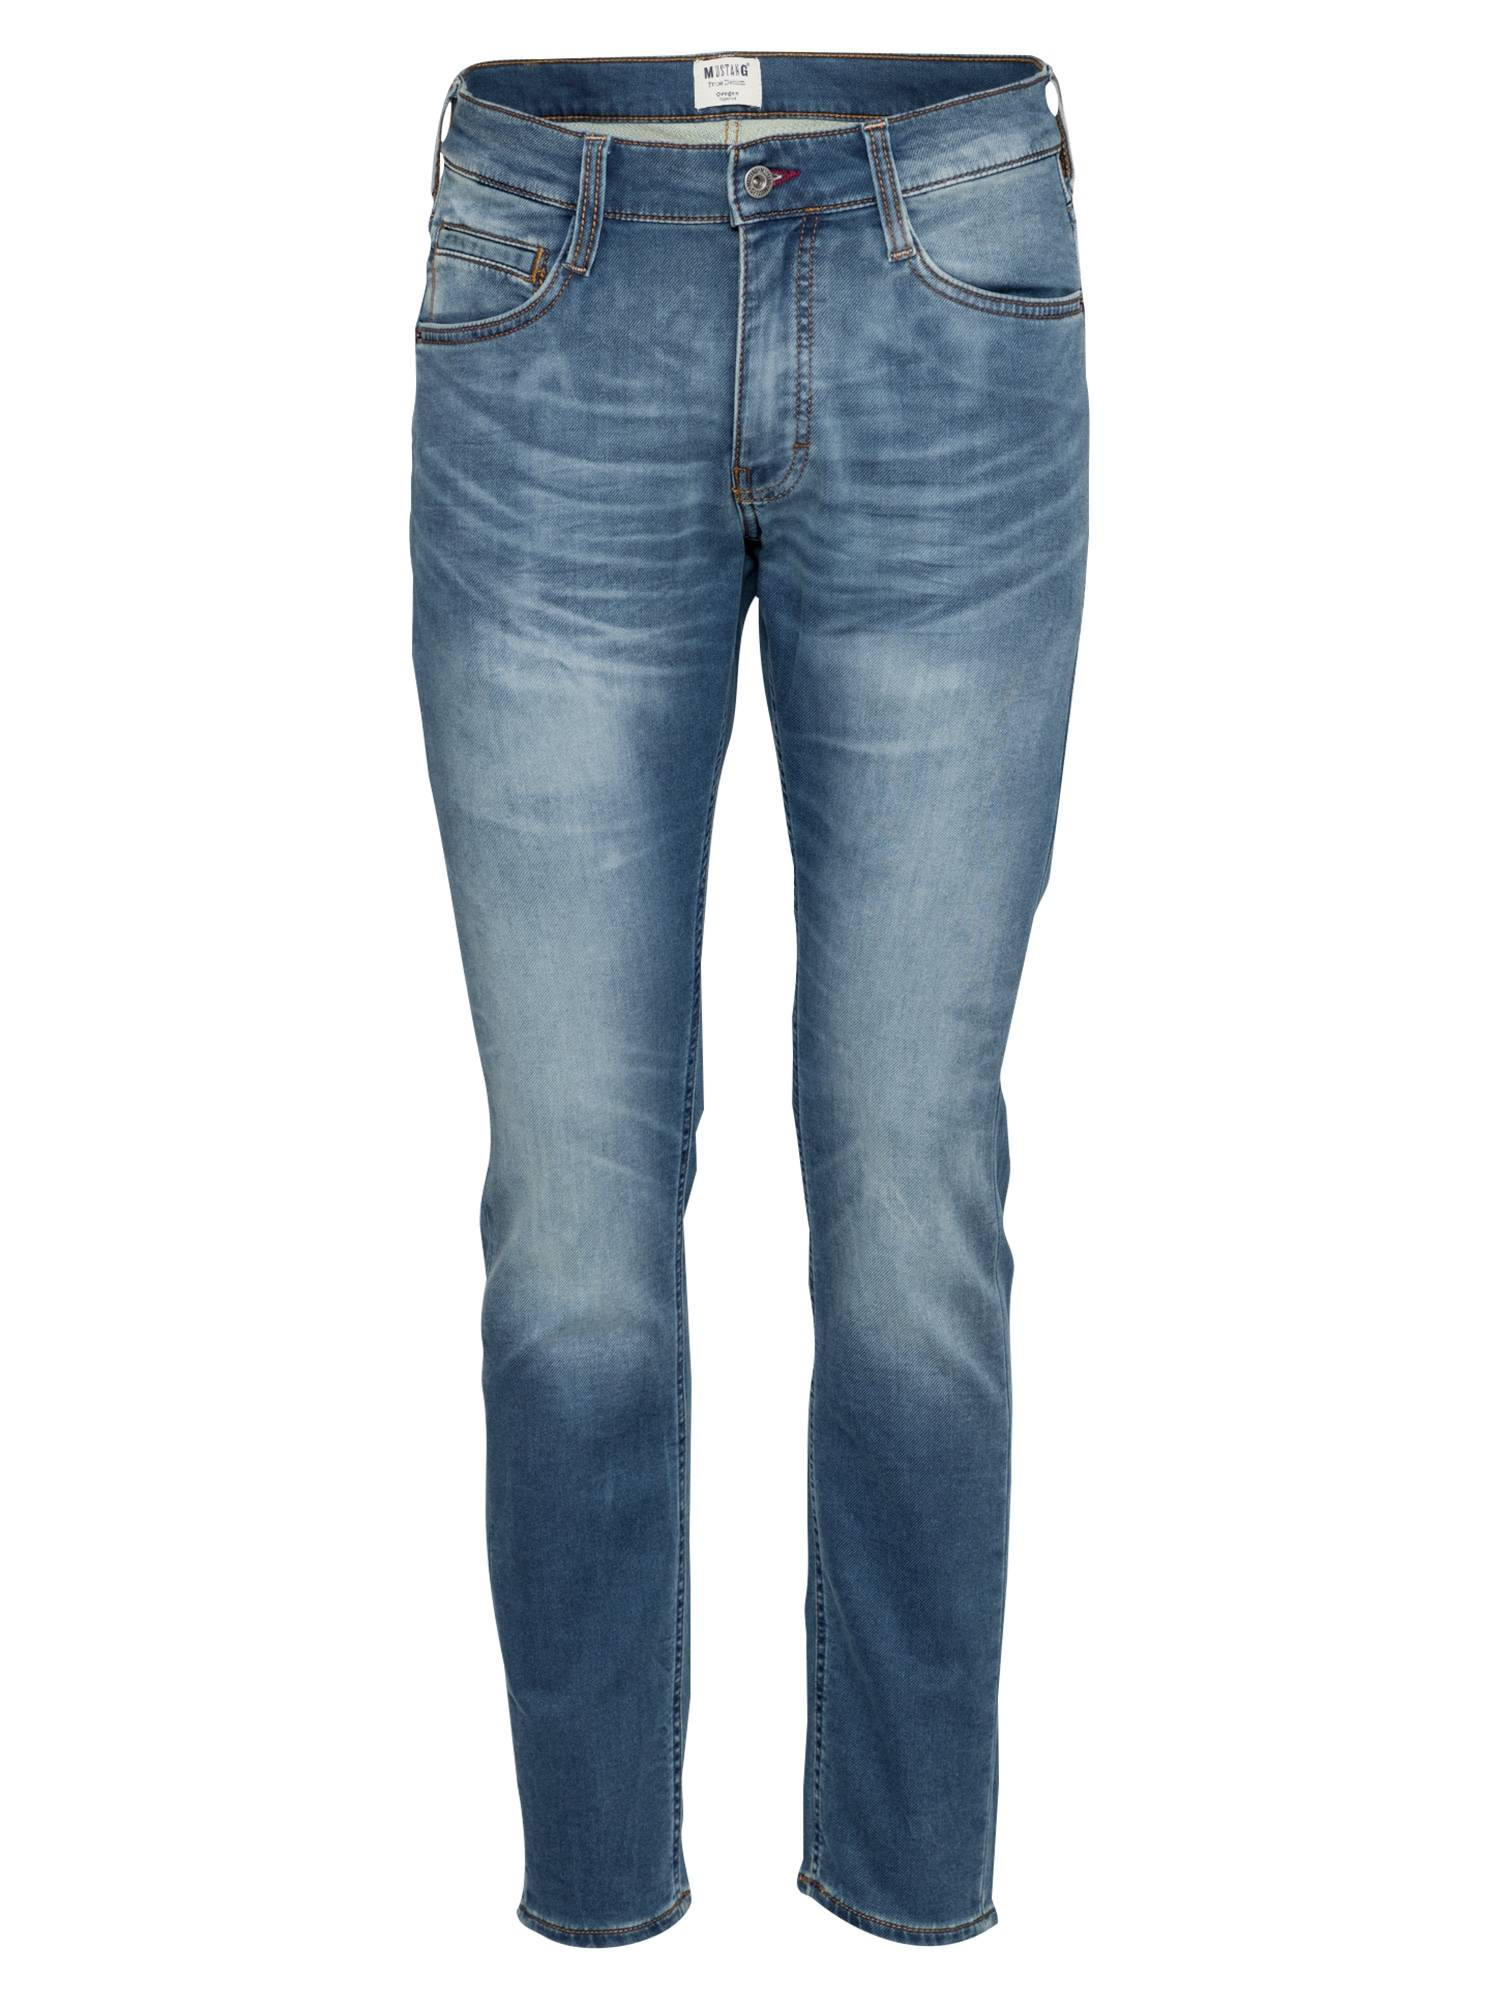 MUSTANG Jean 'Oregon Tapered K'  - Bleu - Taille: 33 - male